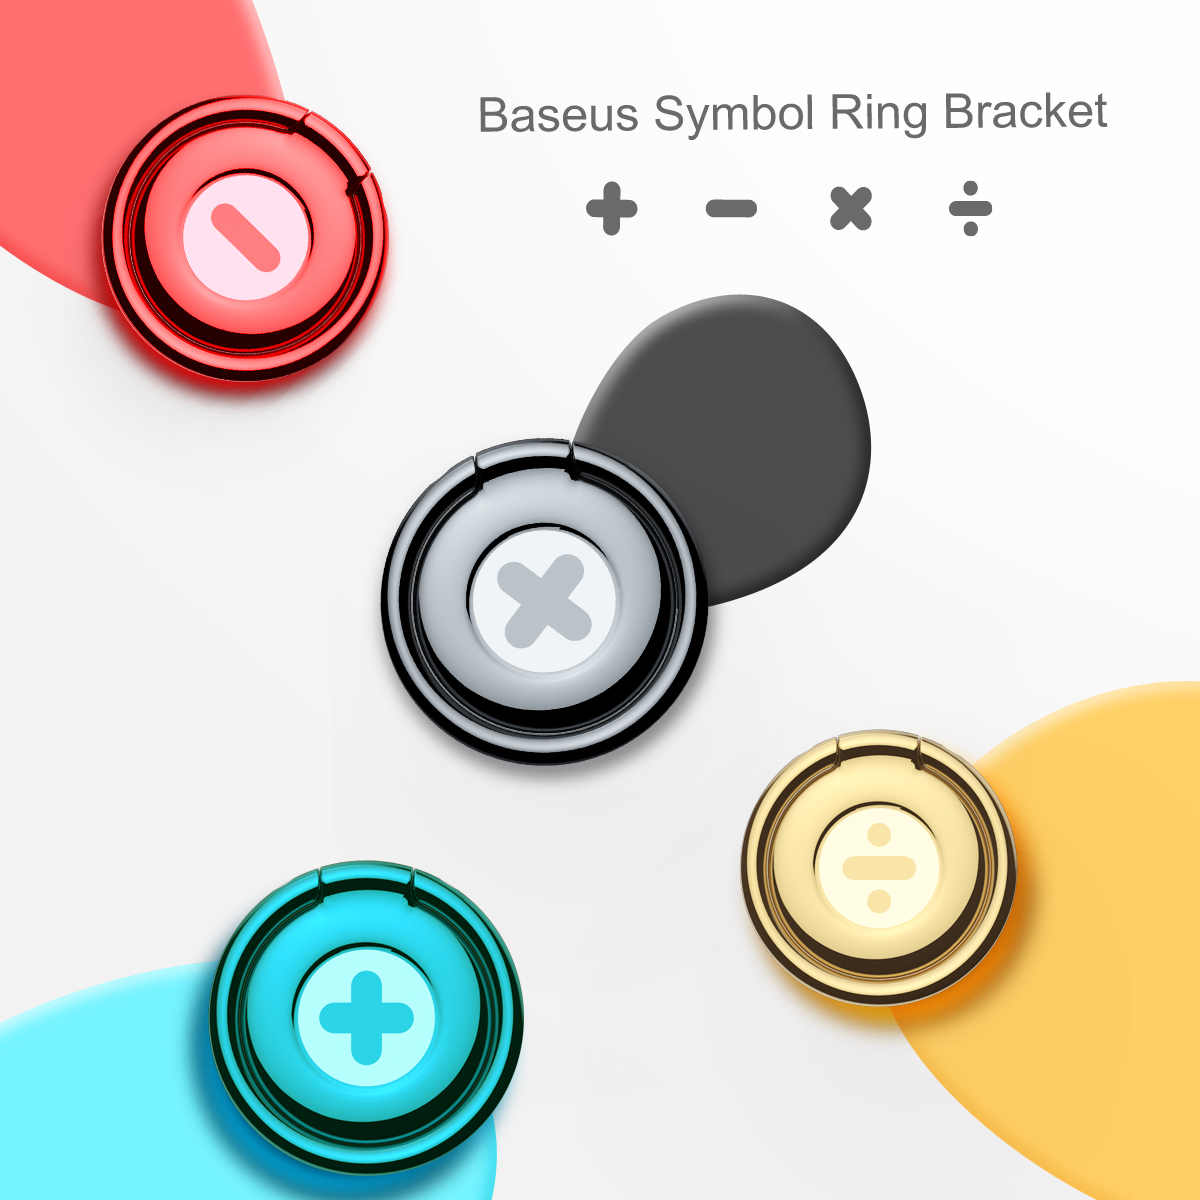 Baseus Universal Symbol Finger Ring Bracket 360 degree Mobile Phone Holder Stand For iPhone 7 6 6s Samsung Xiaomi HTC Huawei in Phone Holders Stands from Cellphones Telecommunications